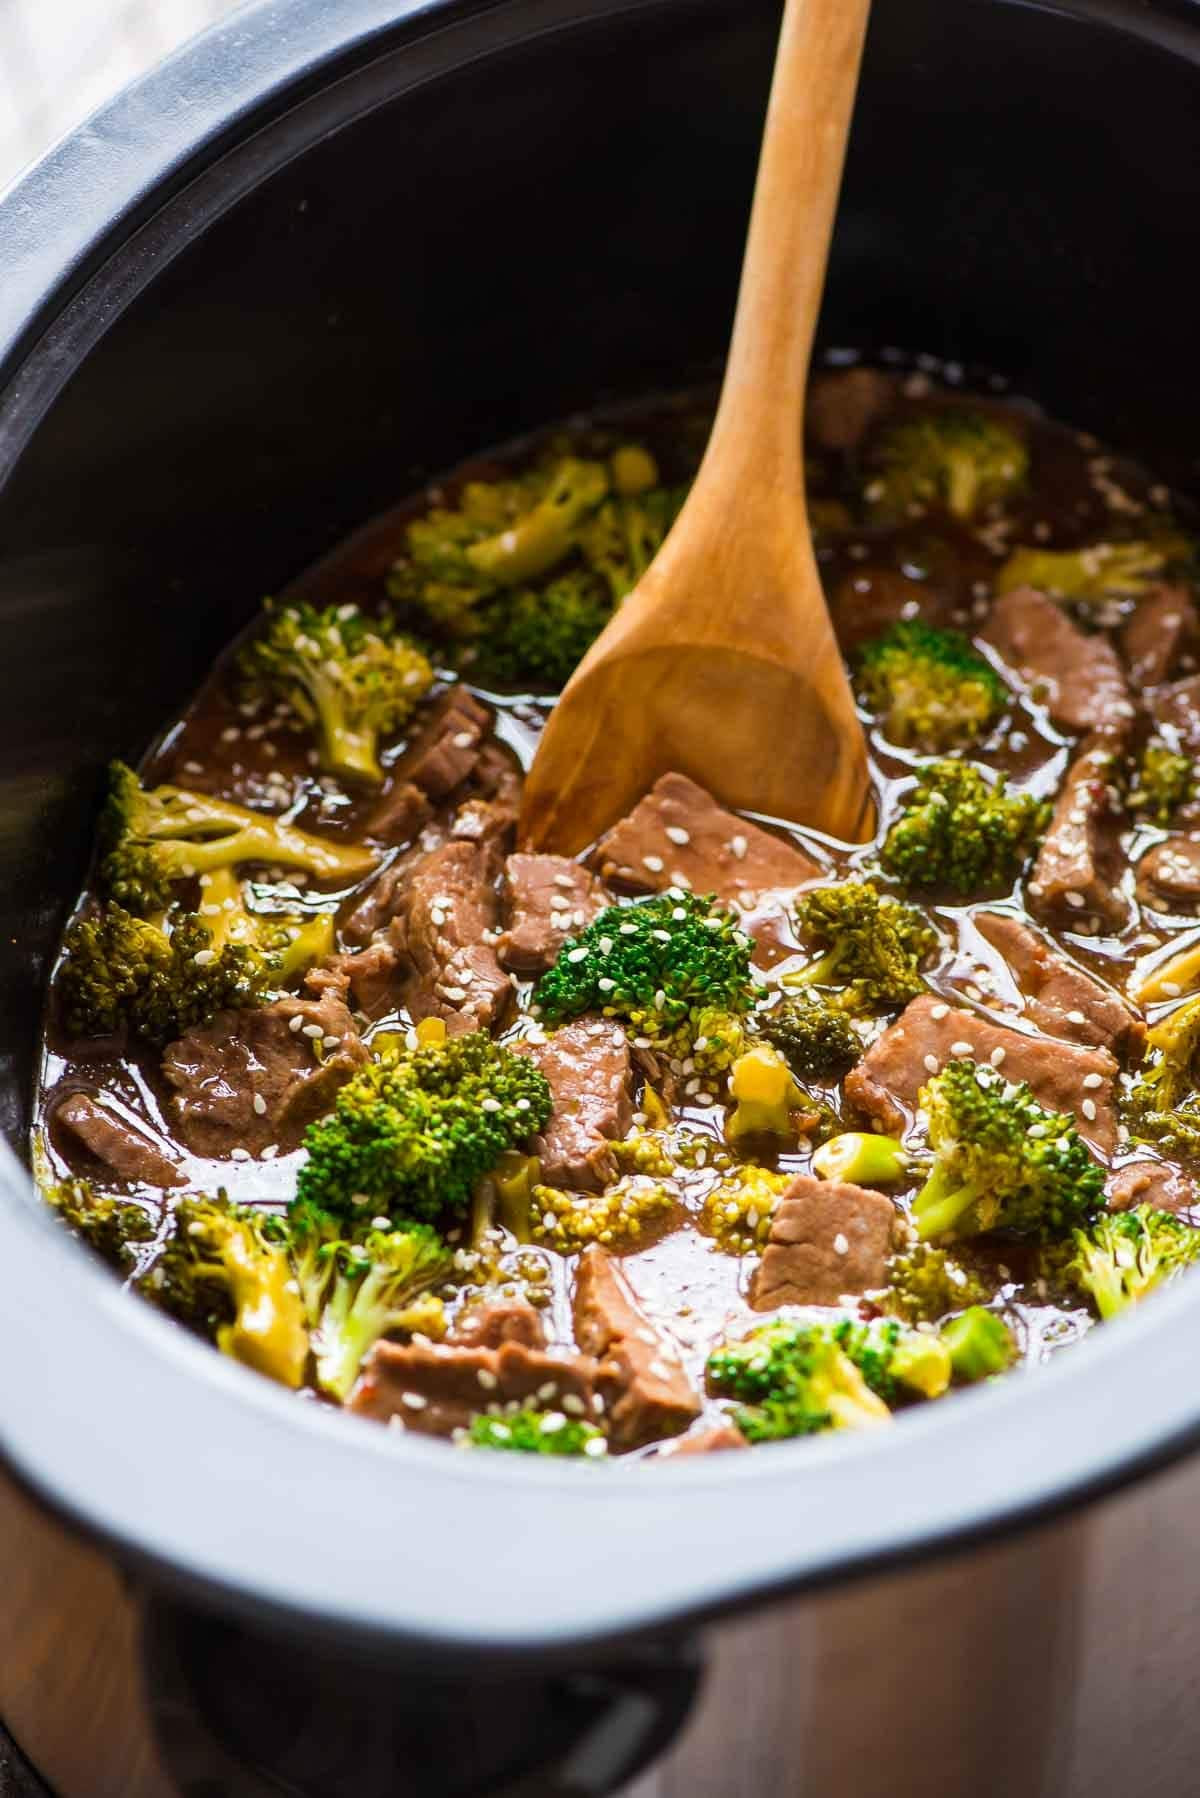 Healthy Easy Slow Cooker Recipes  Slow Cooker Beef and Broccoli